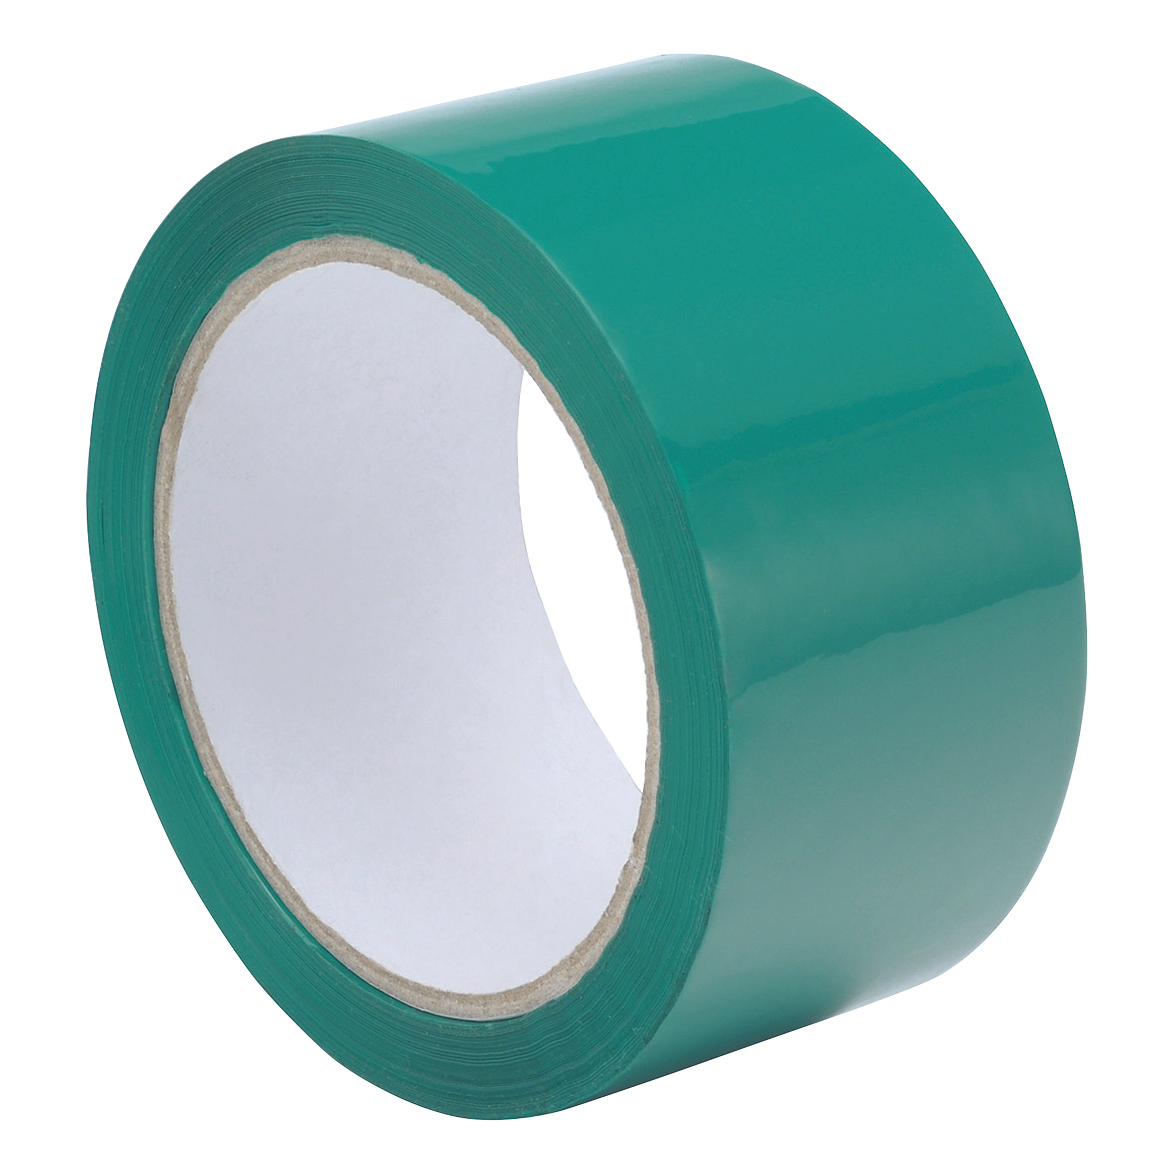 Polypropylene Tape 48mmx66m Green Pack 6